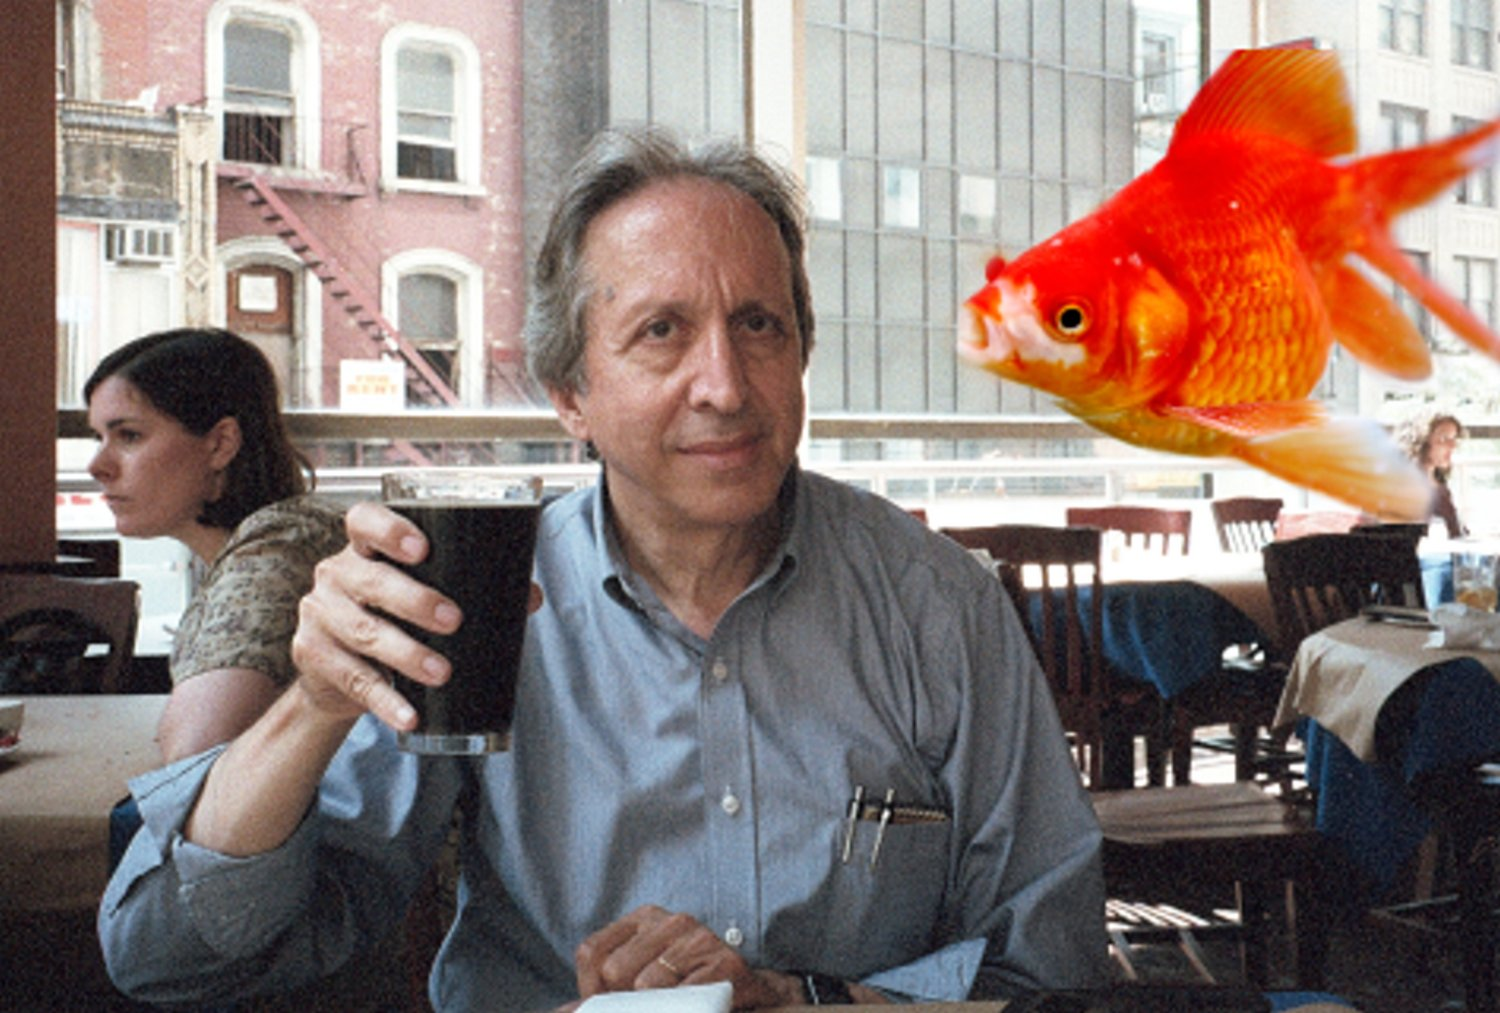 artist toasting his muse with gold fish - Tony Karp - Techno-Impressionist Museum - Techno-Impressionism - art - beautiful - photo photography picture - by Tony Karp